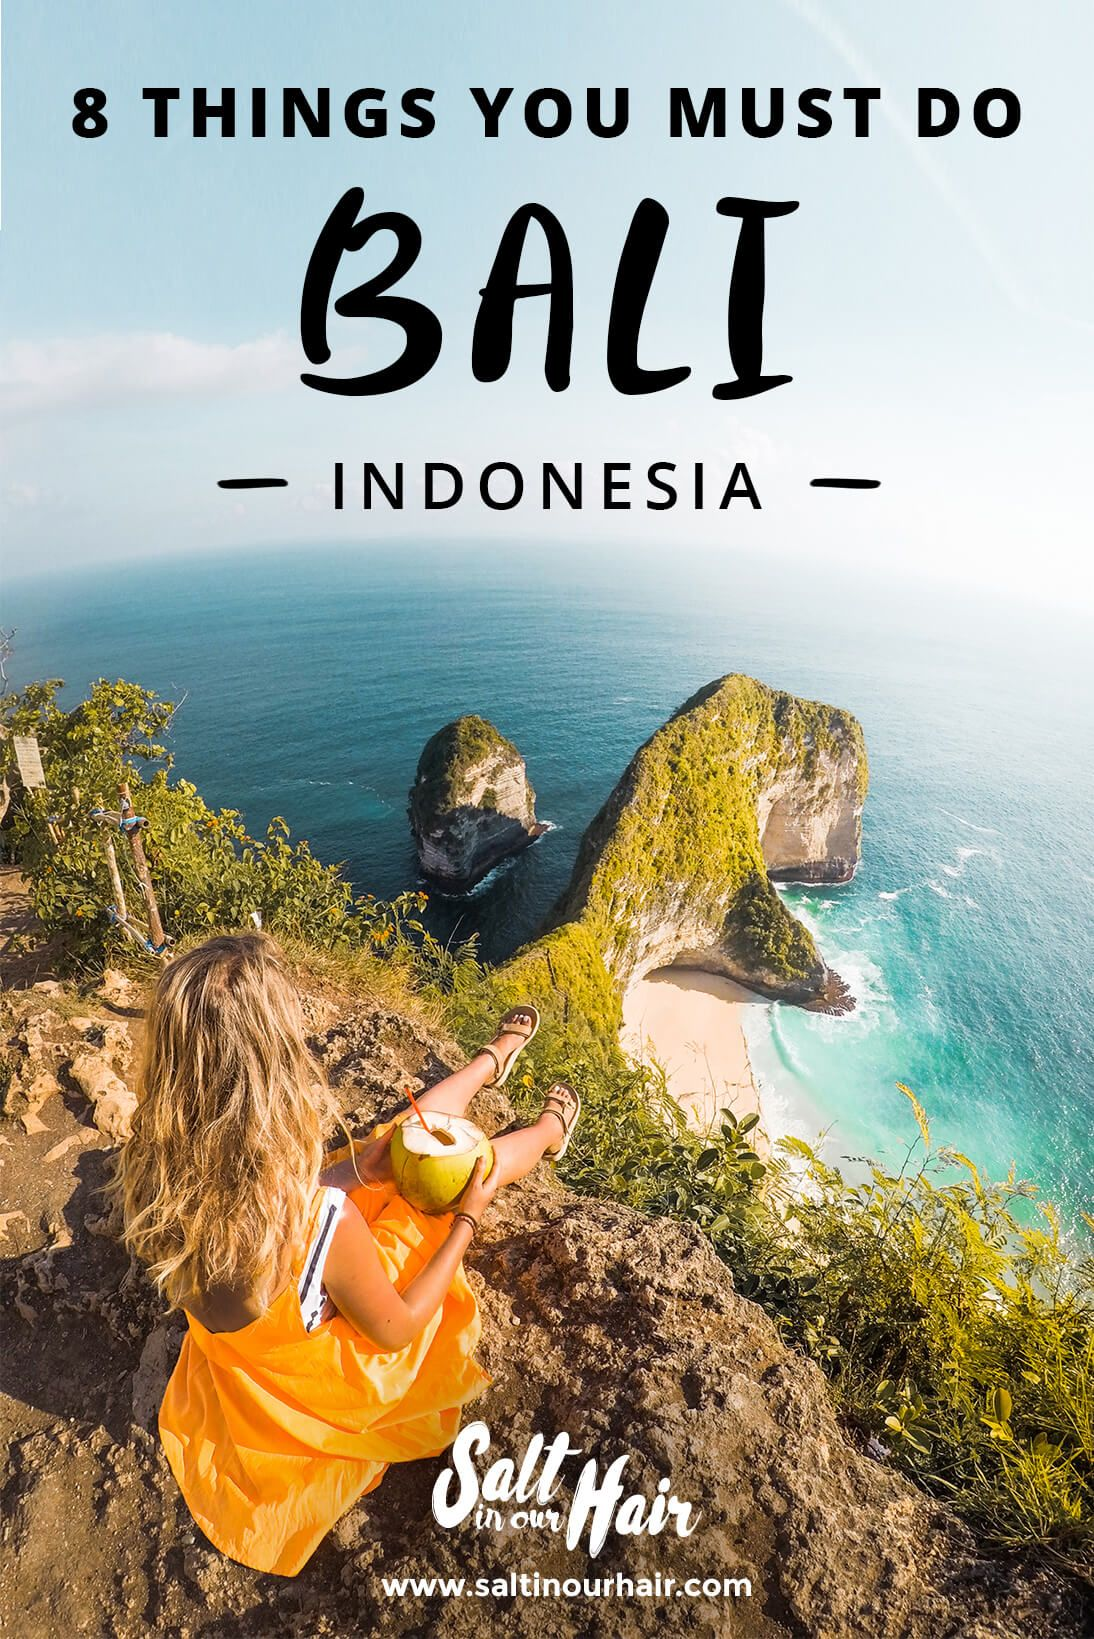 8 Things You Must Do in Bali, Indonesia